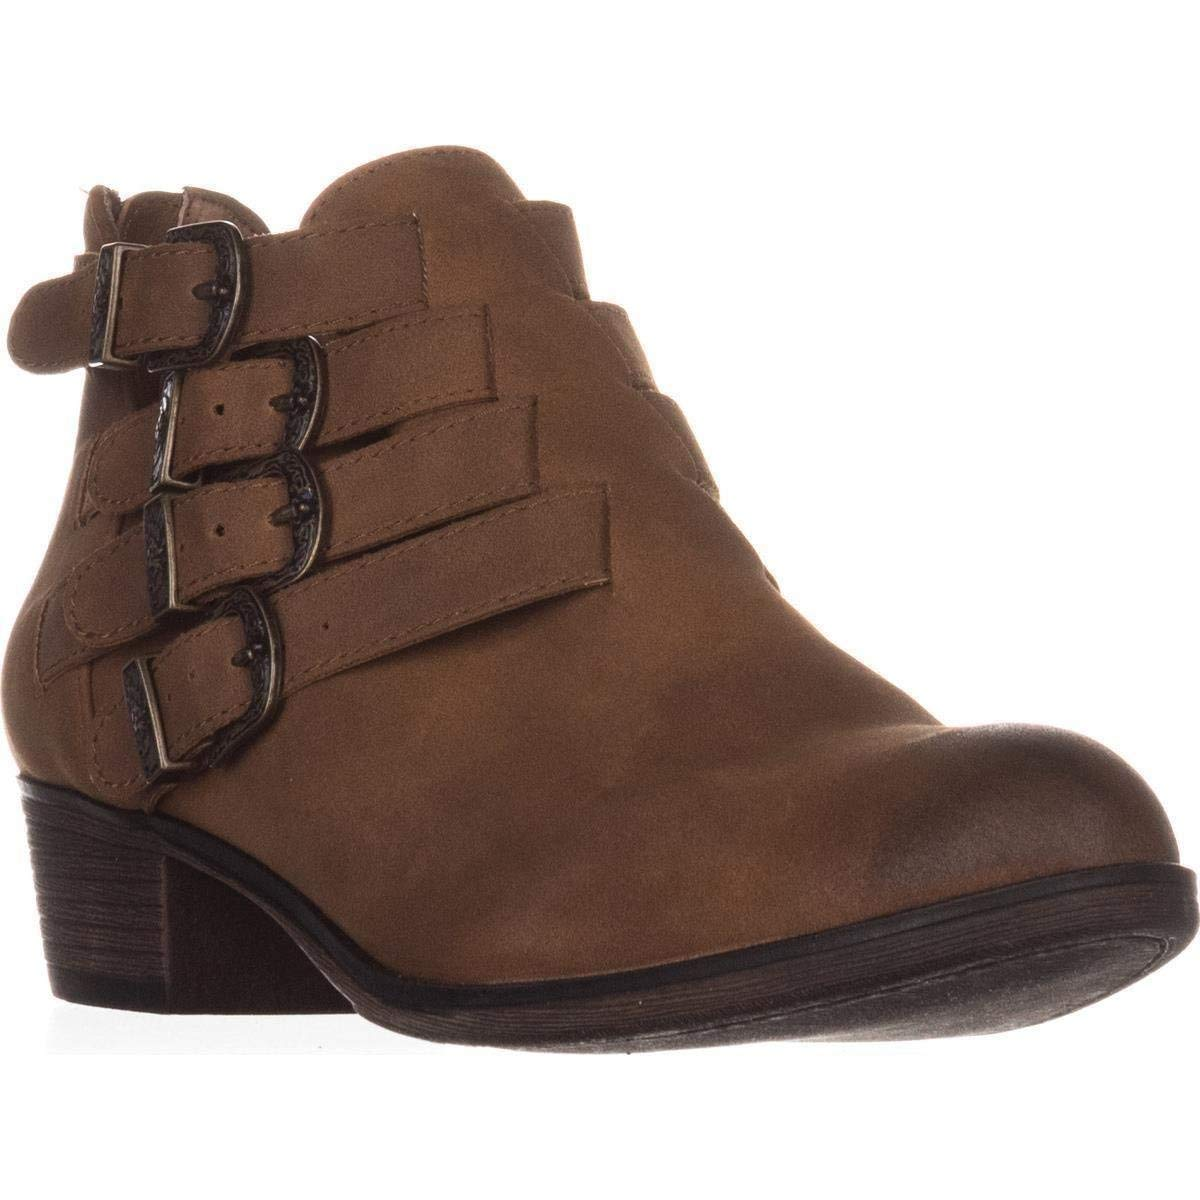 American Closed Rag Damenschuhe Darie Closed American Toe Ankle Fashion Stiefel ac8295